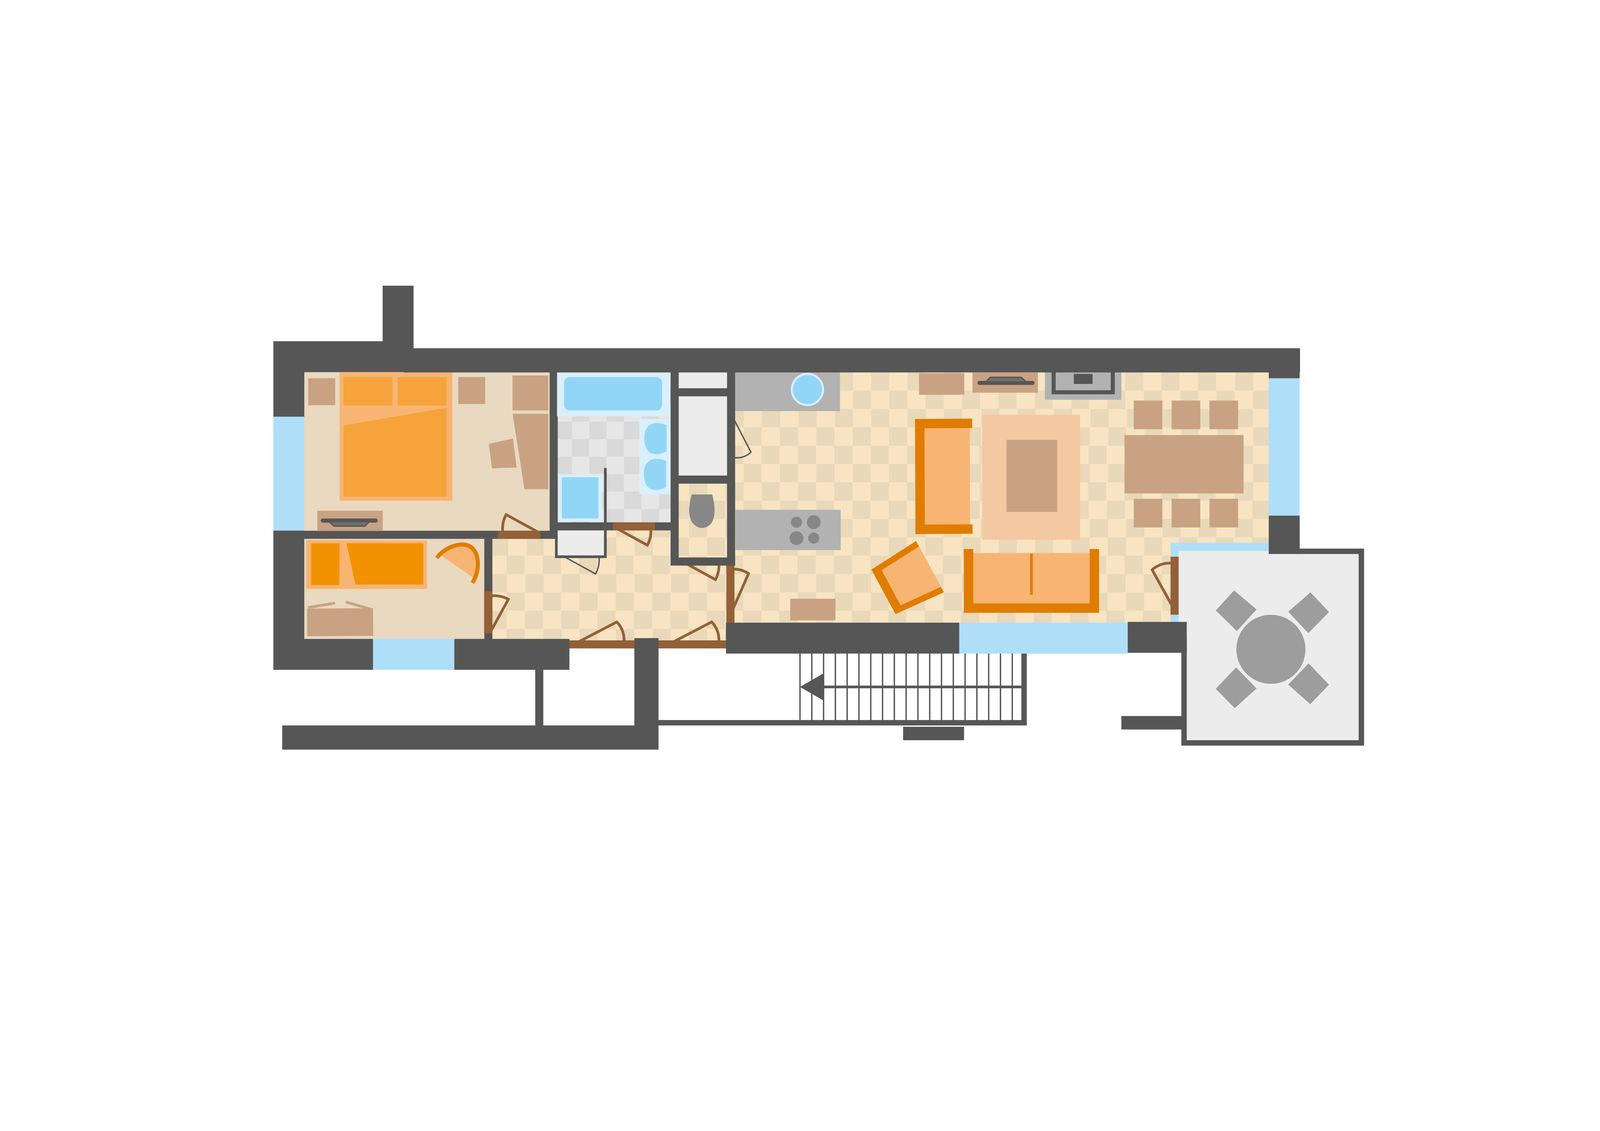 Image of Apartment type 6L